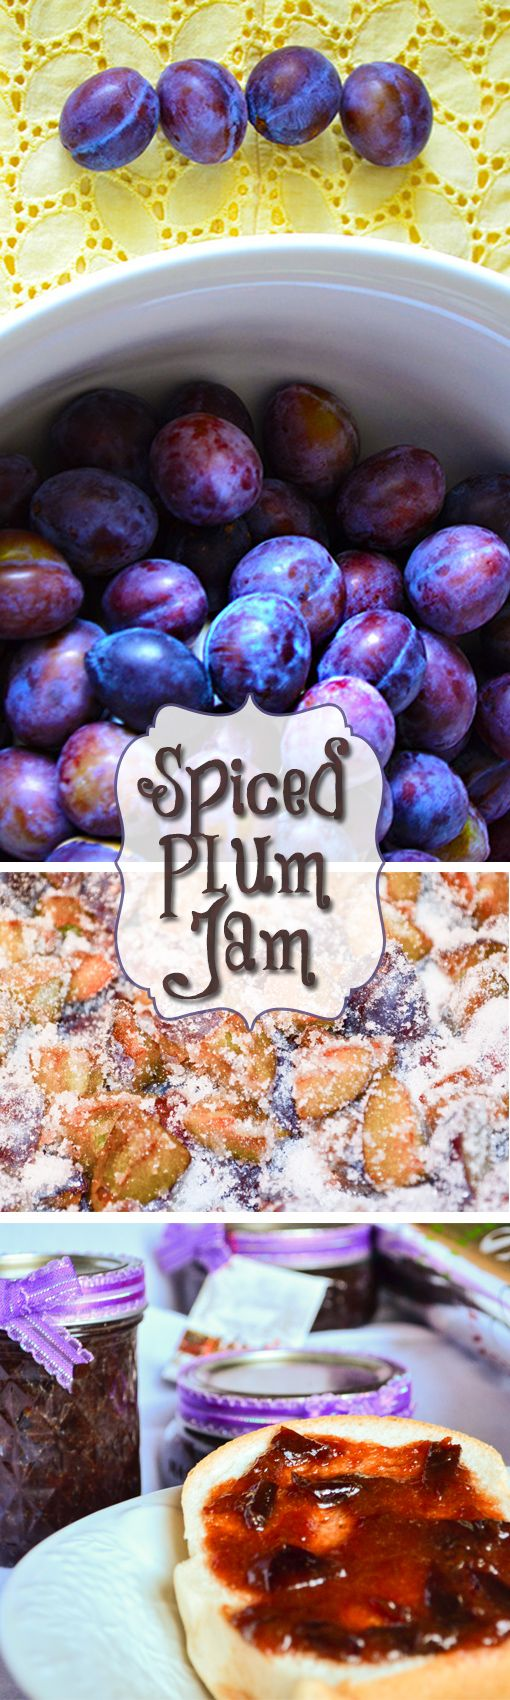 Tastes like Christmas; this homemade spiced plum jam recipe idea makes a cute and tasty holiday mason jar gift.